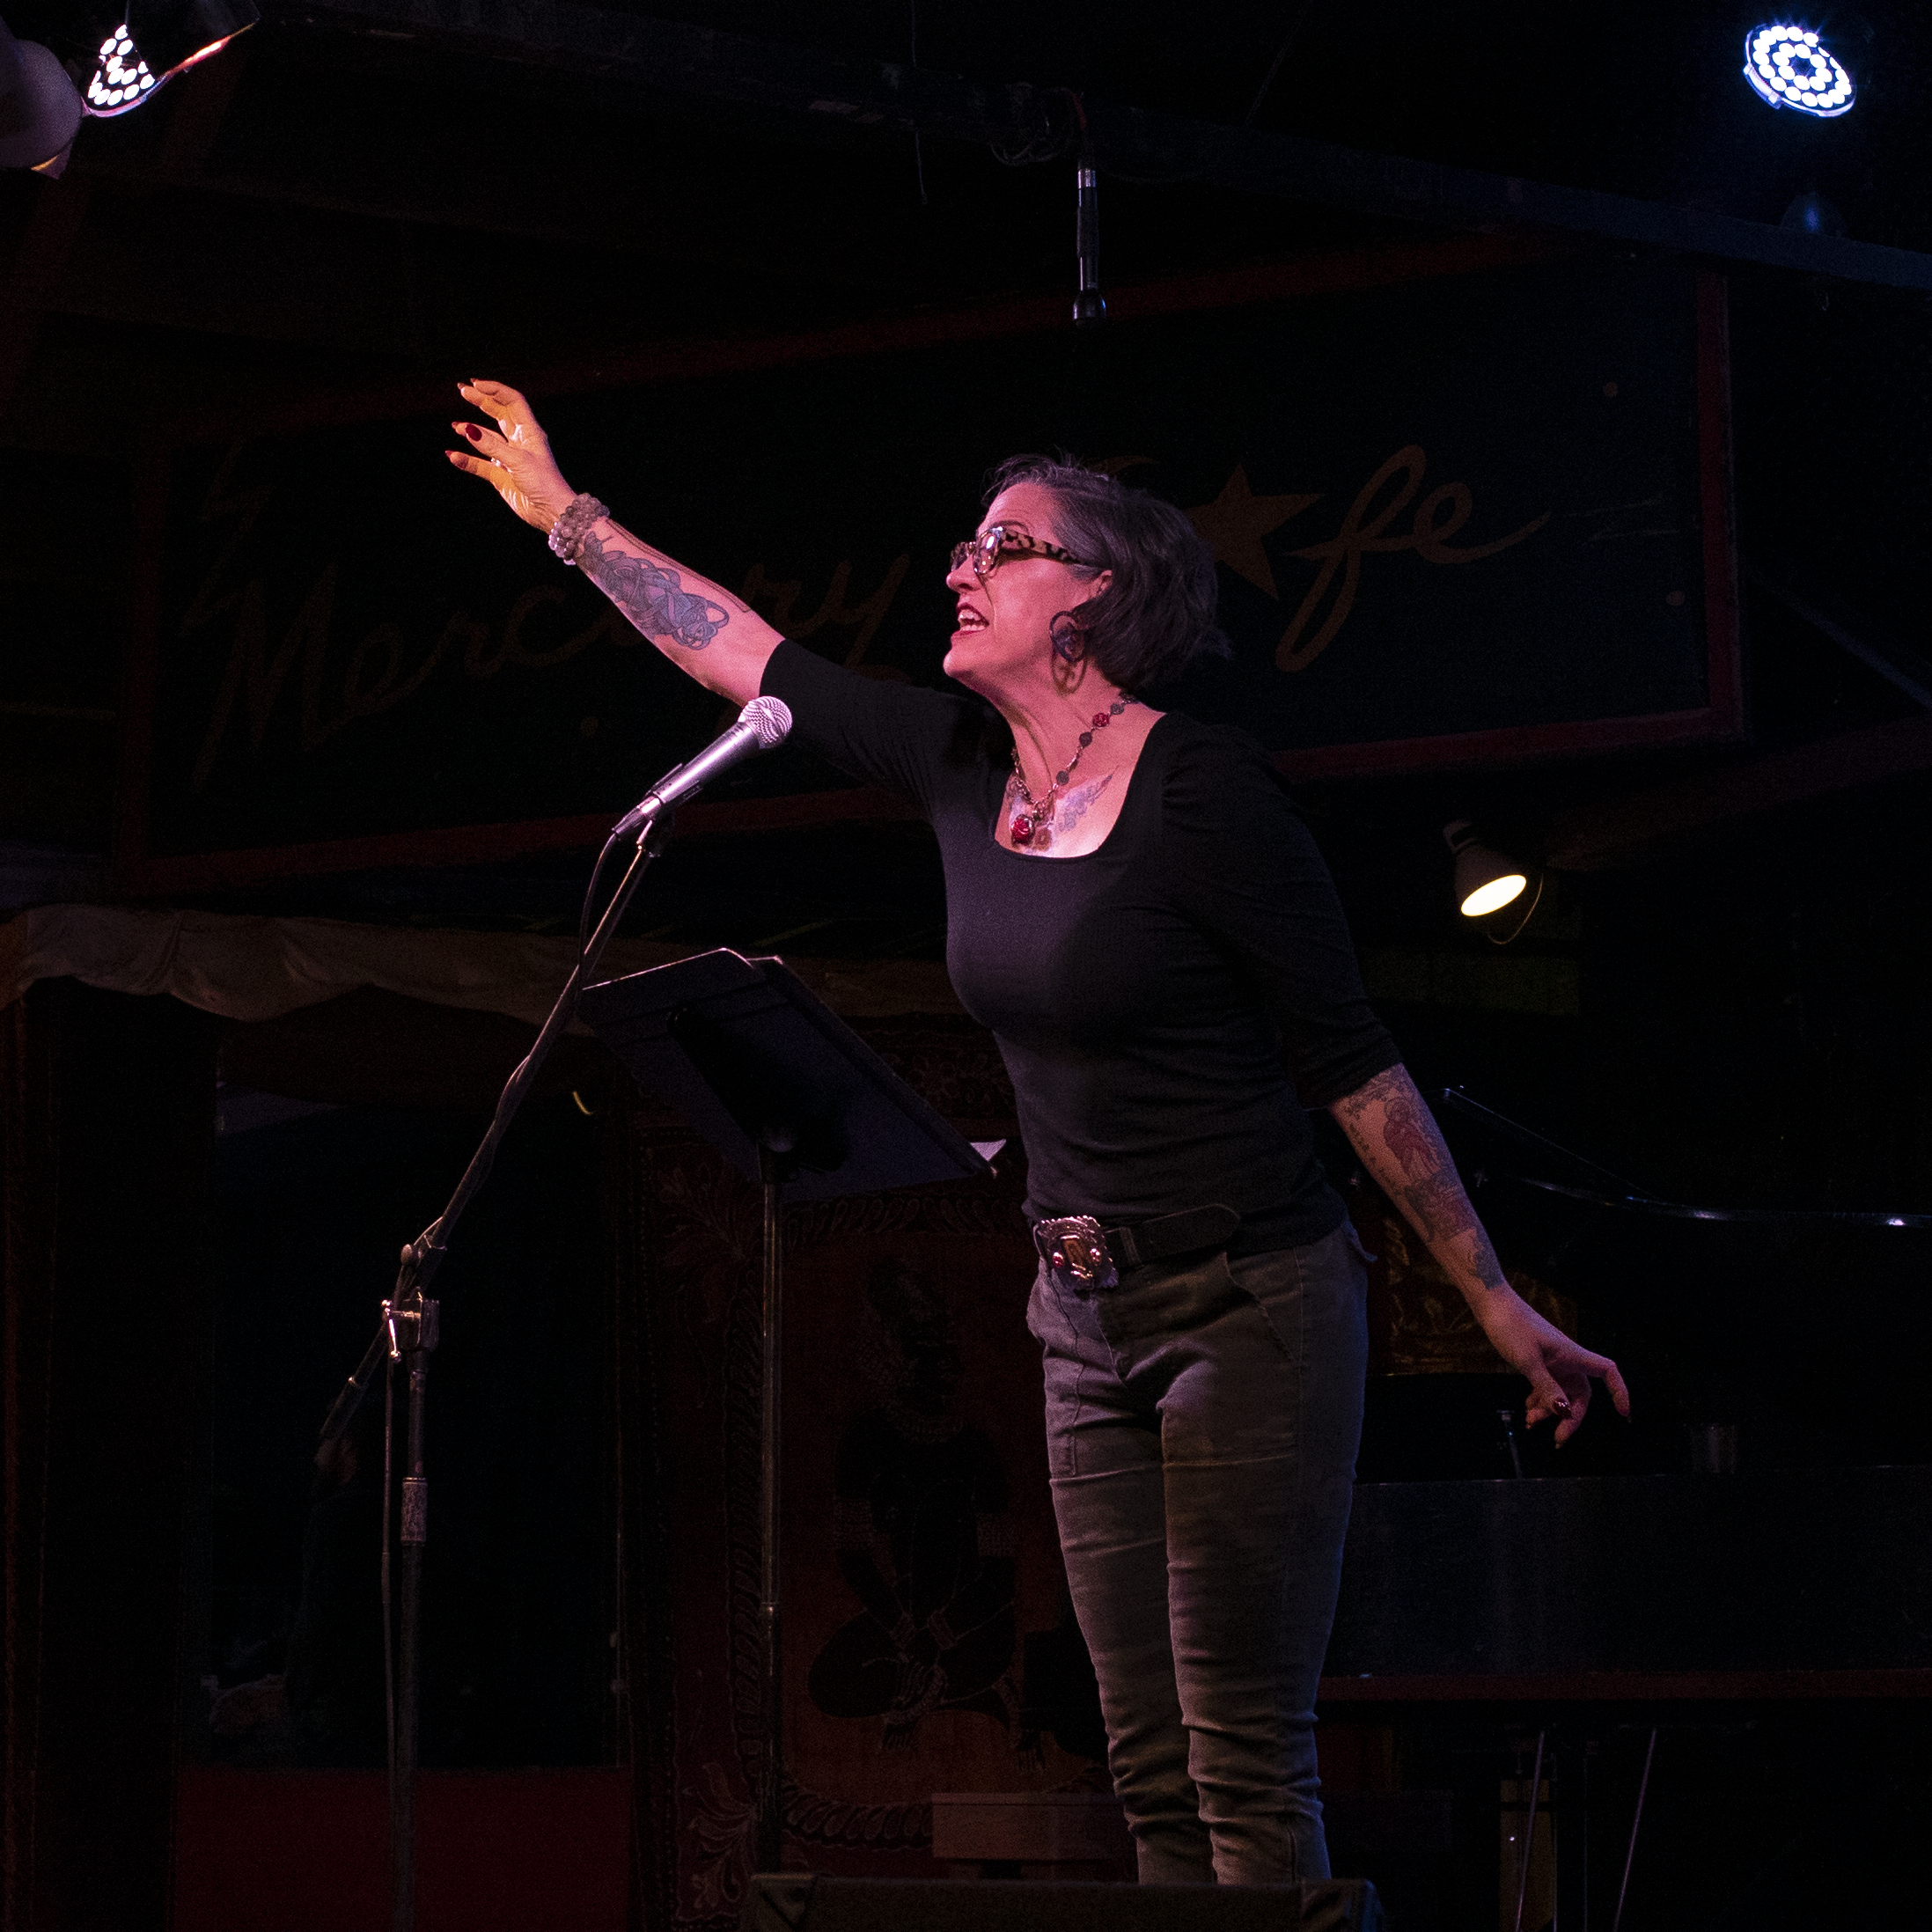 Nadia Bolz-Weber at Liminal Photographer, Dylan Lee Lowry